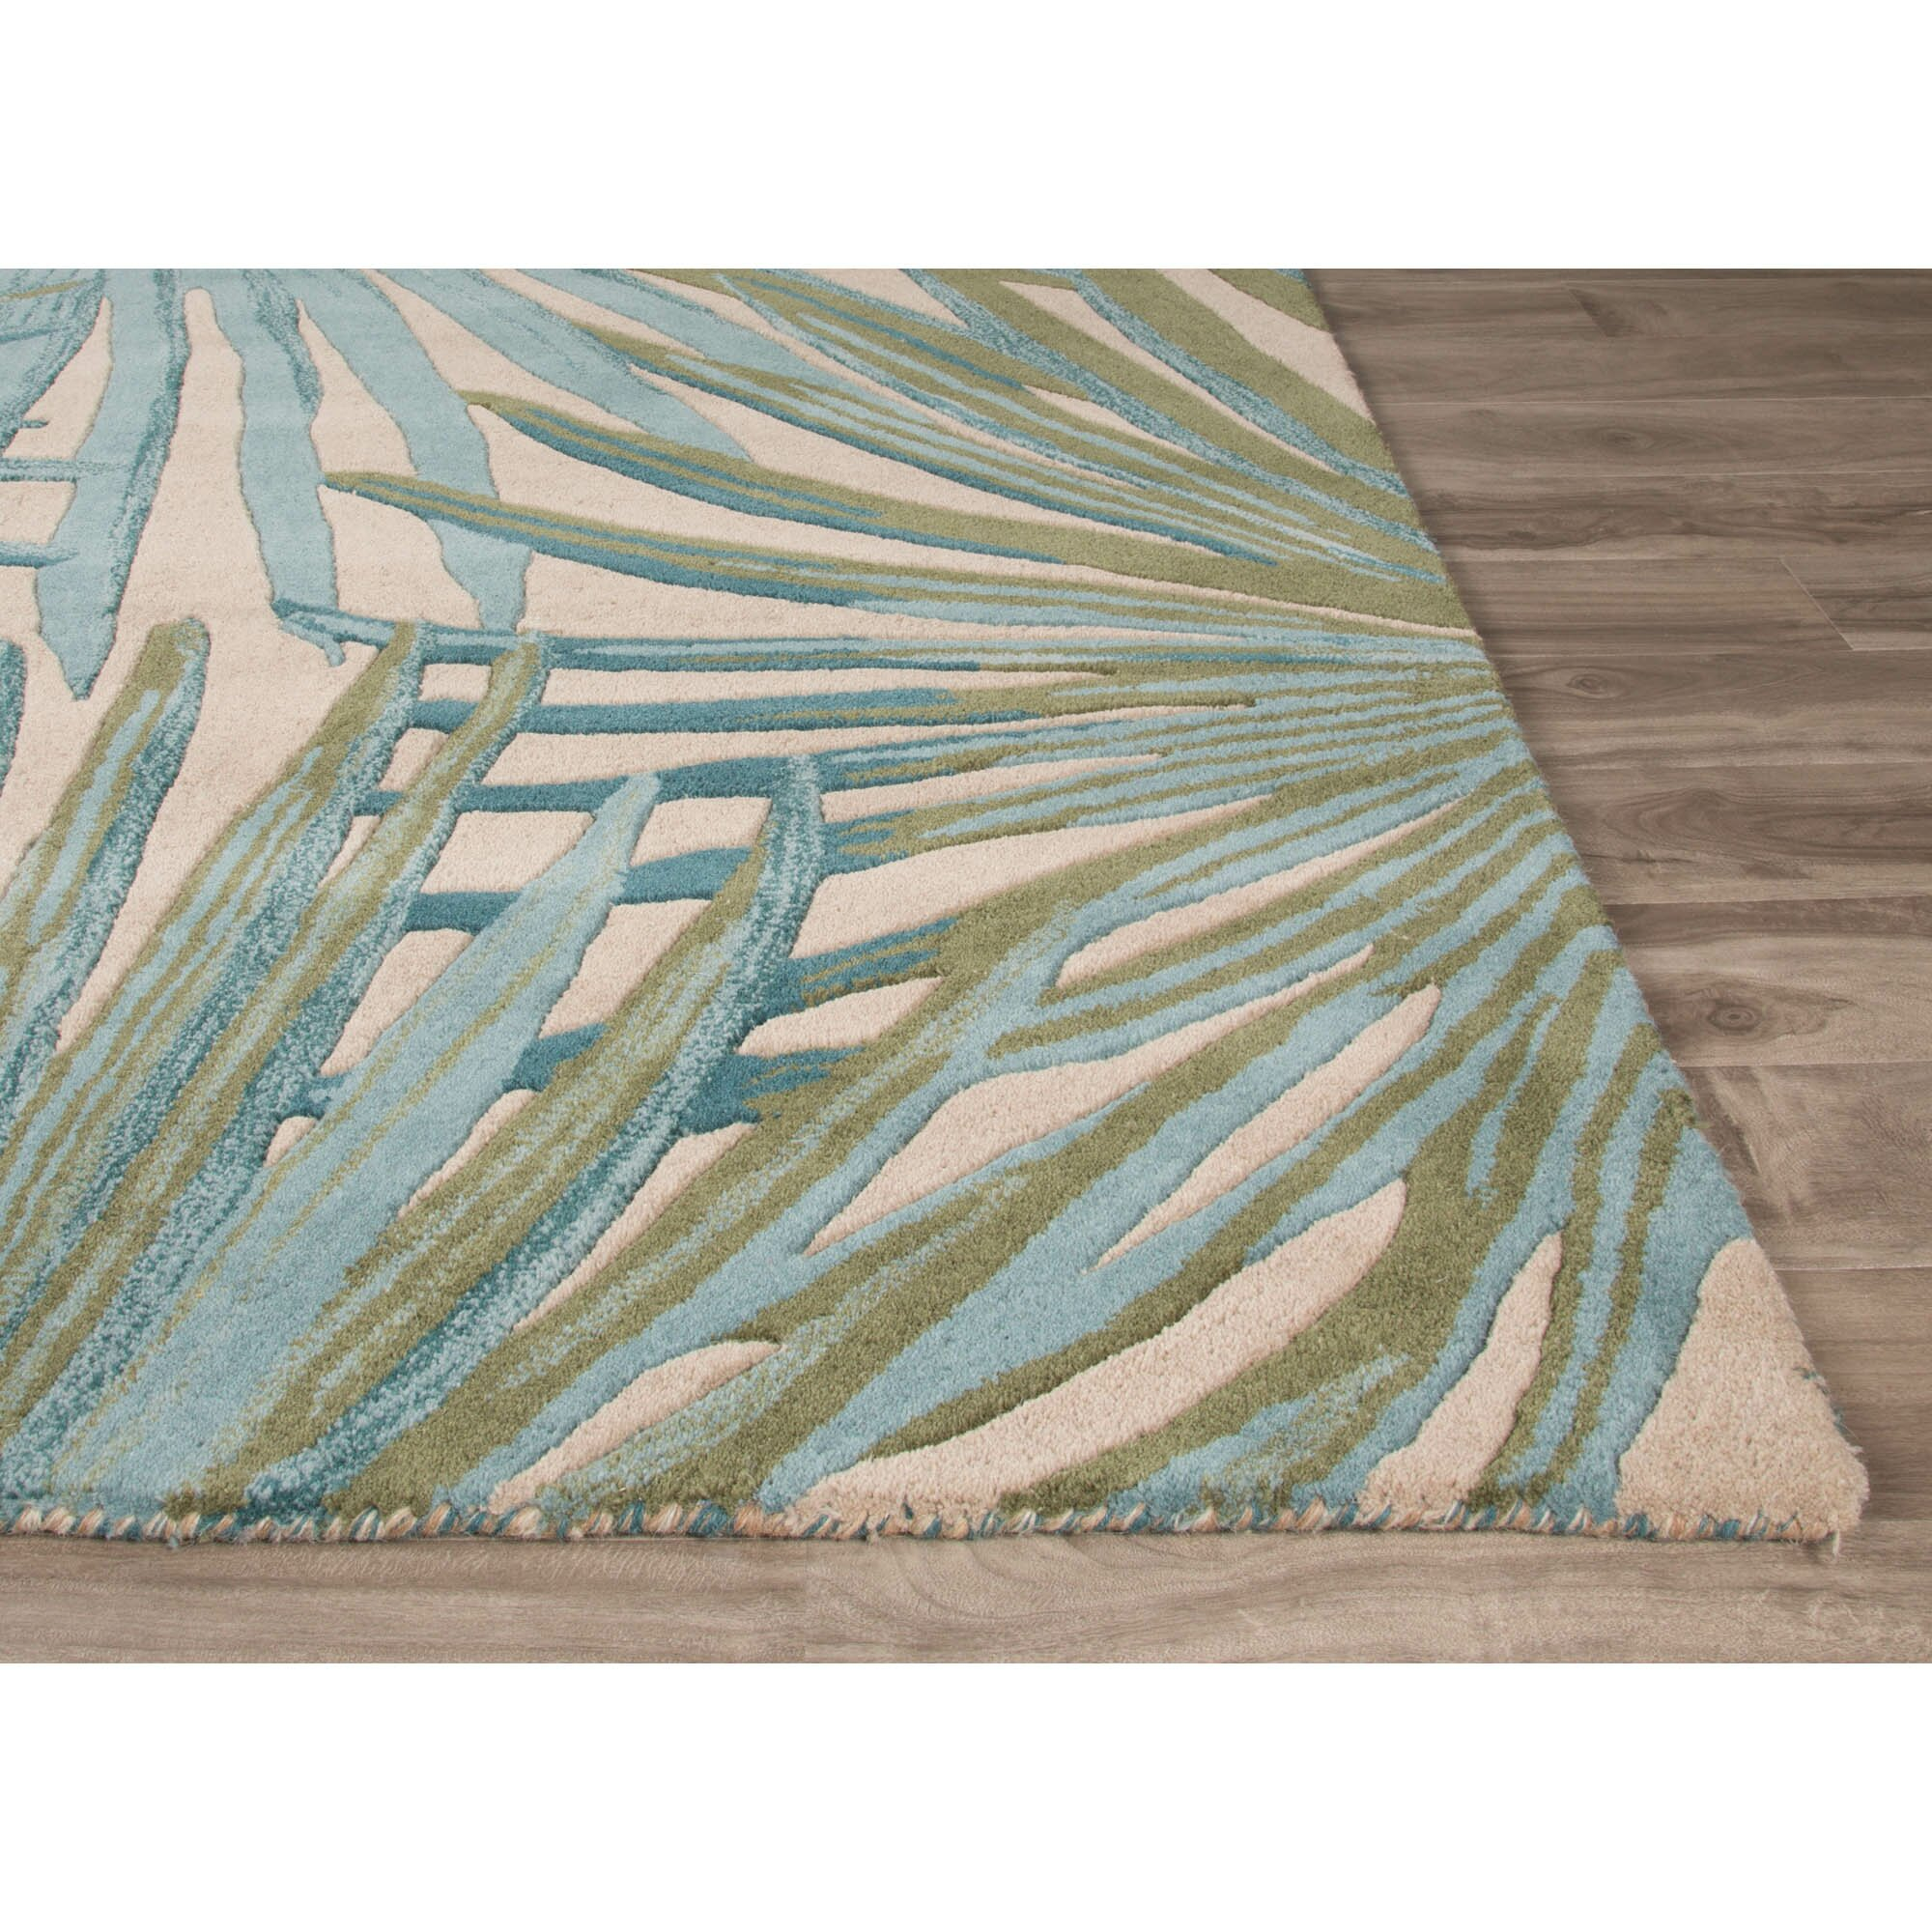 Dining Room Rugs Size Jaipurliving Coastal Seaside Hand Tufted Blue Green Area